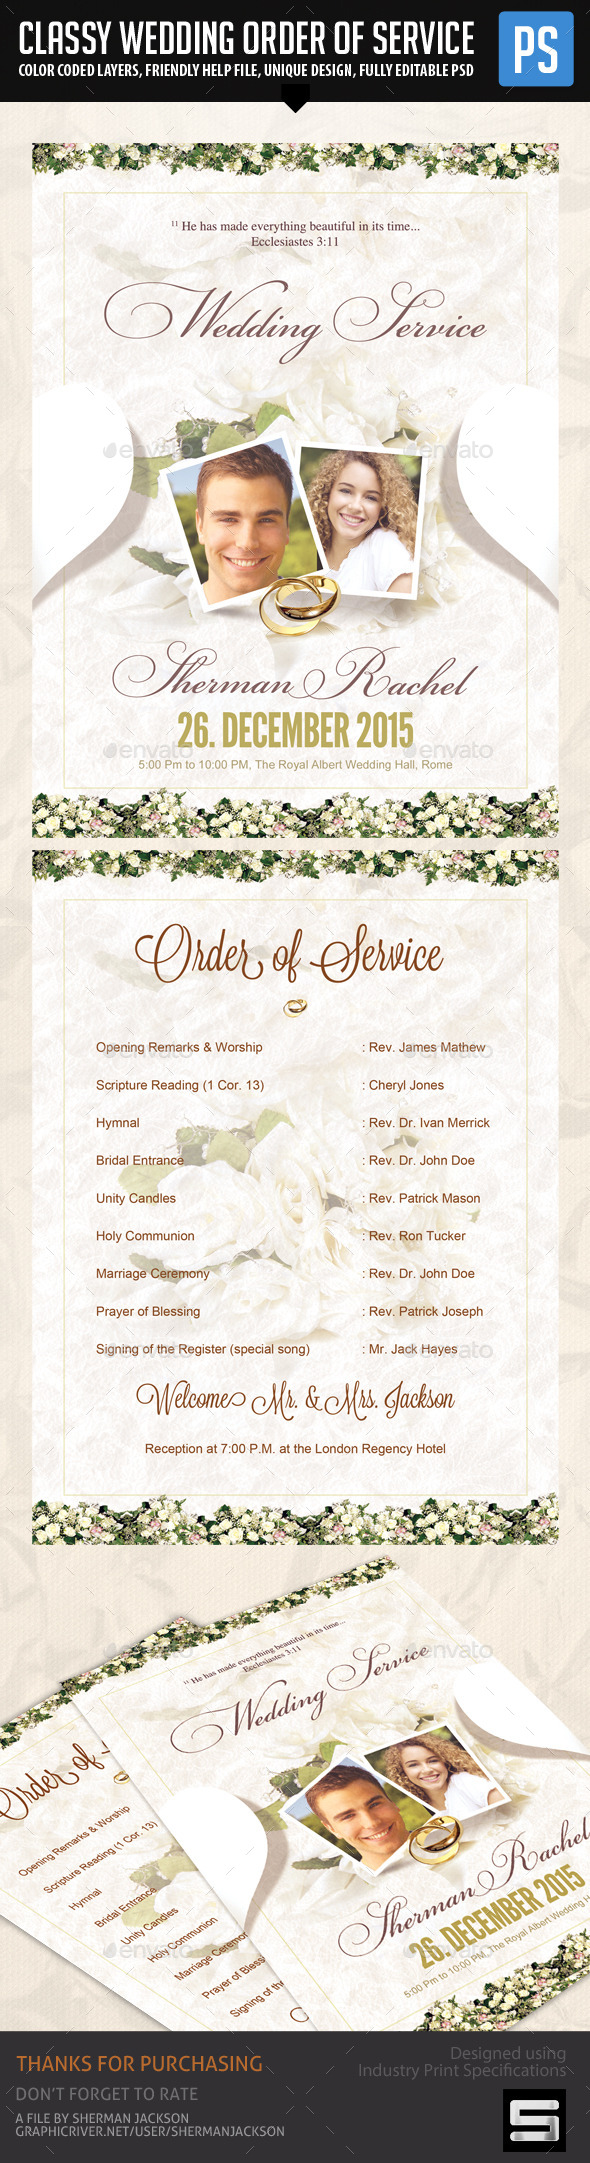 Classy Wedding Order of Service Template - Weddings Cards & Invites